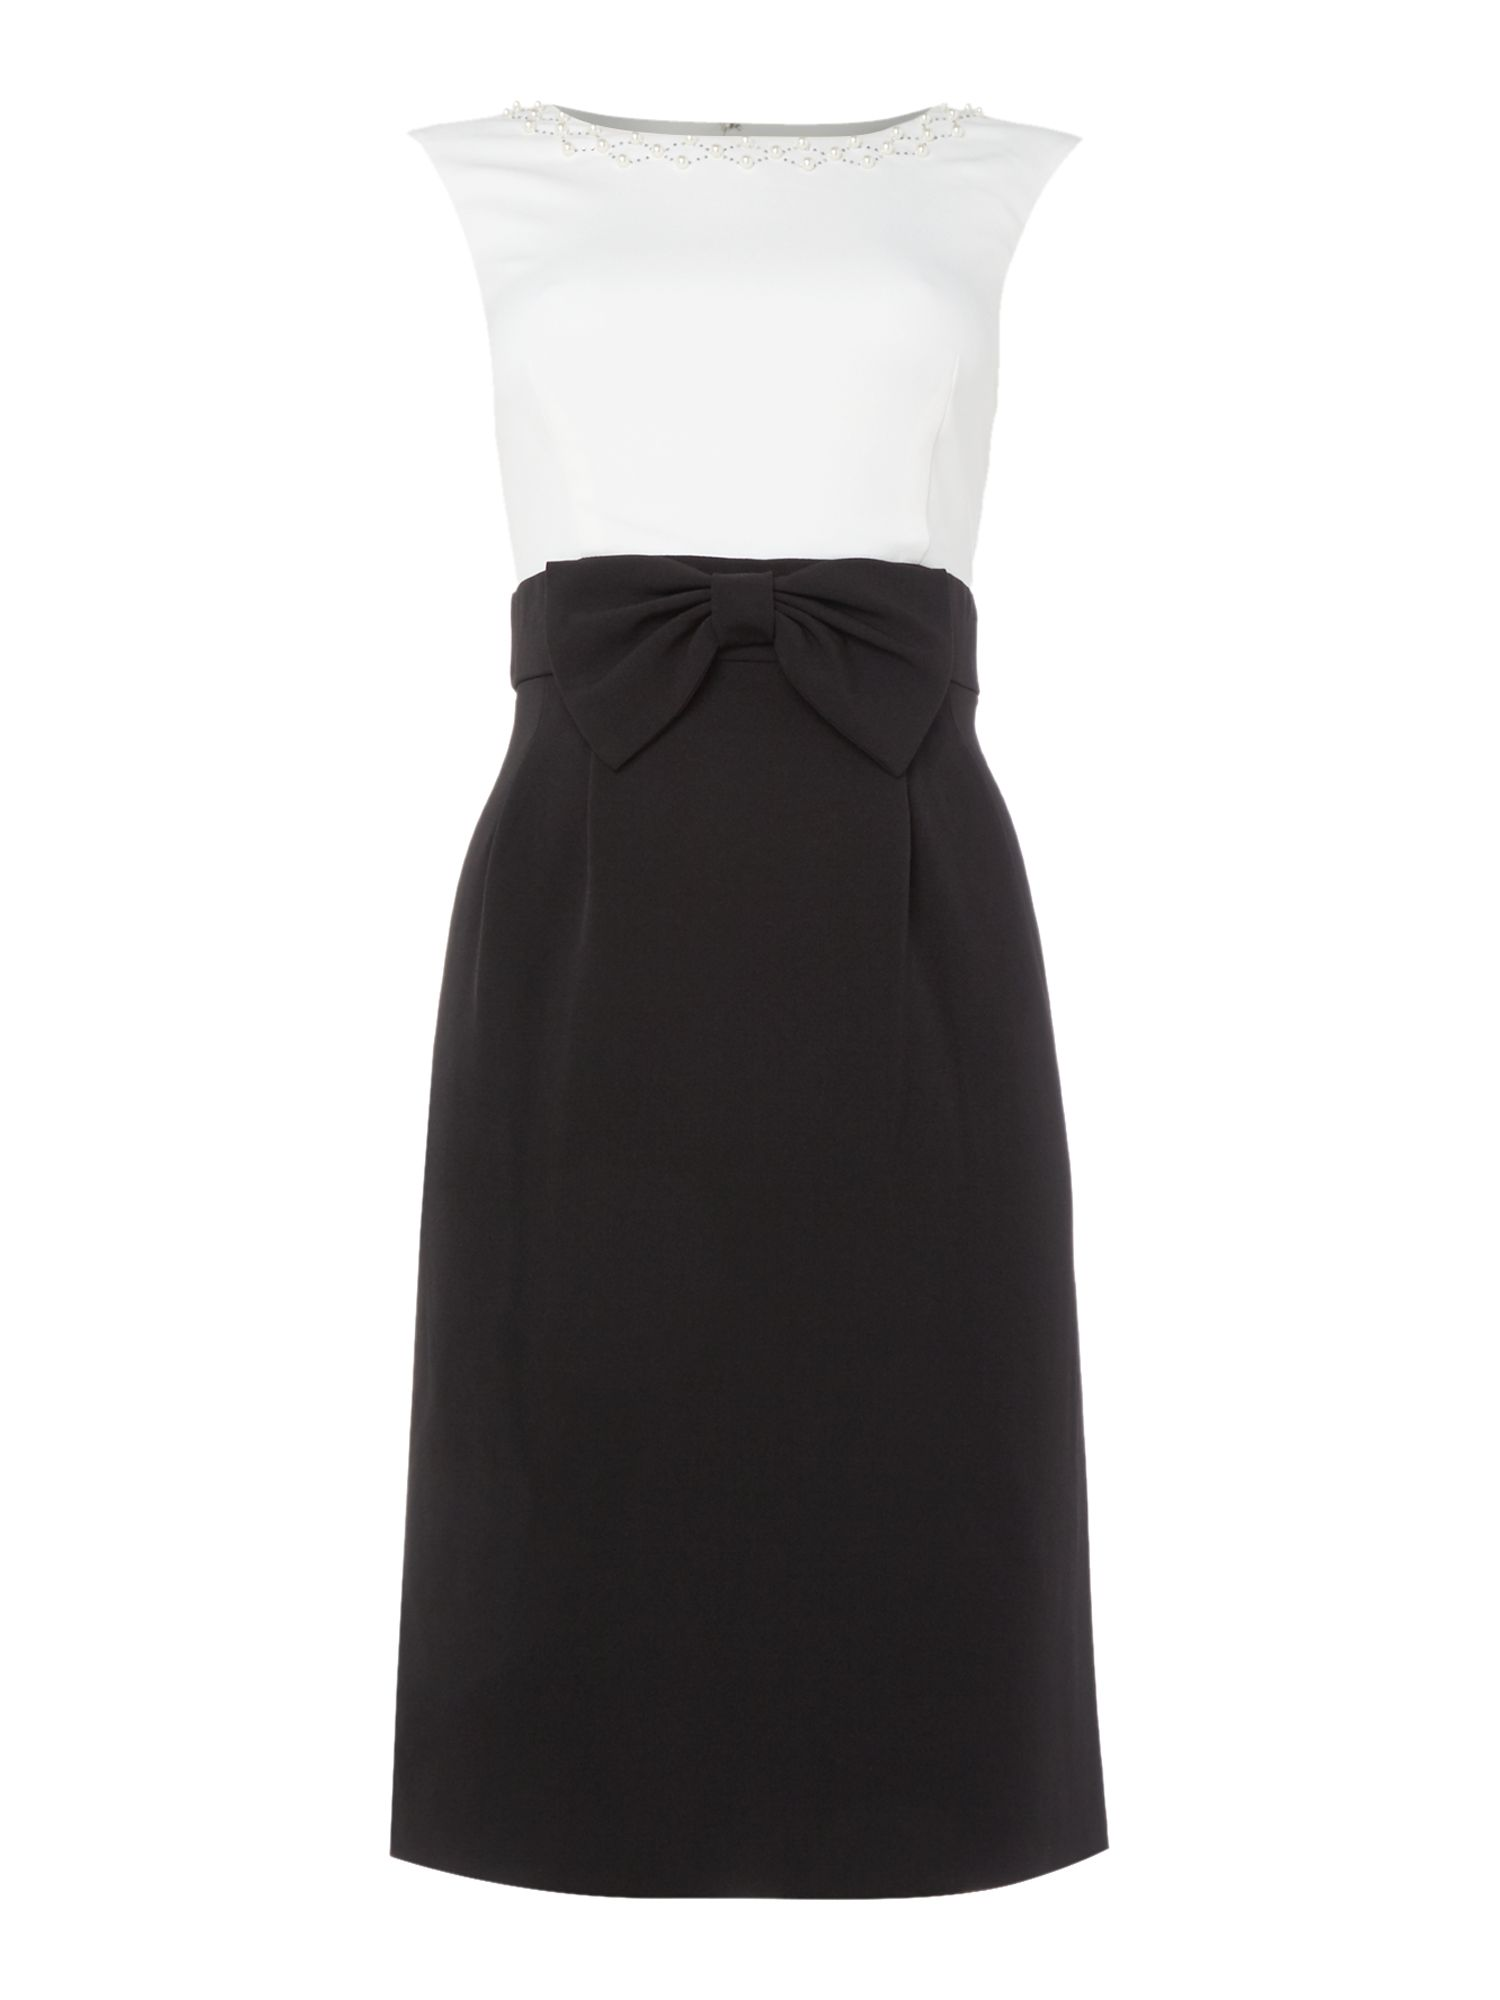 Tahari ASL Black and White Shift Dress with Embellished Coll, Black